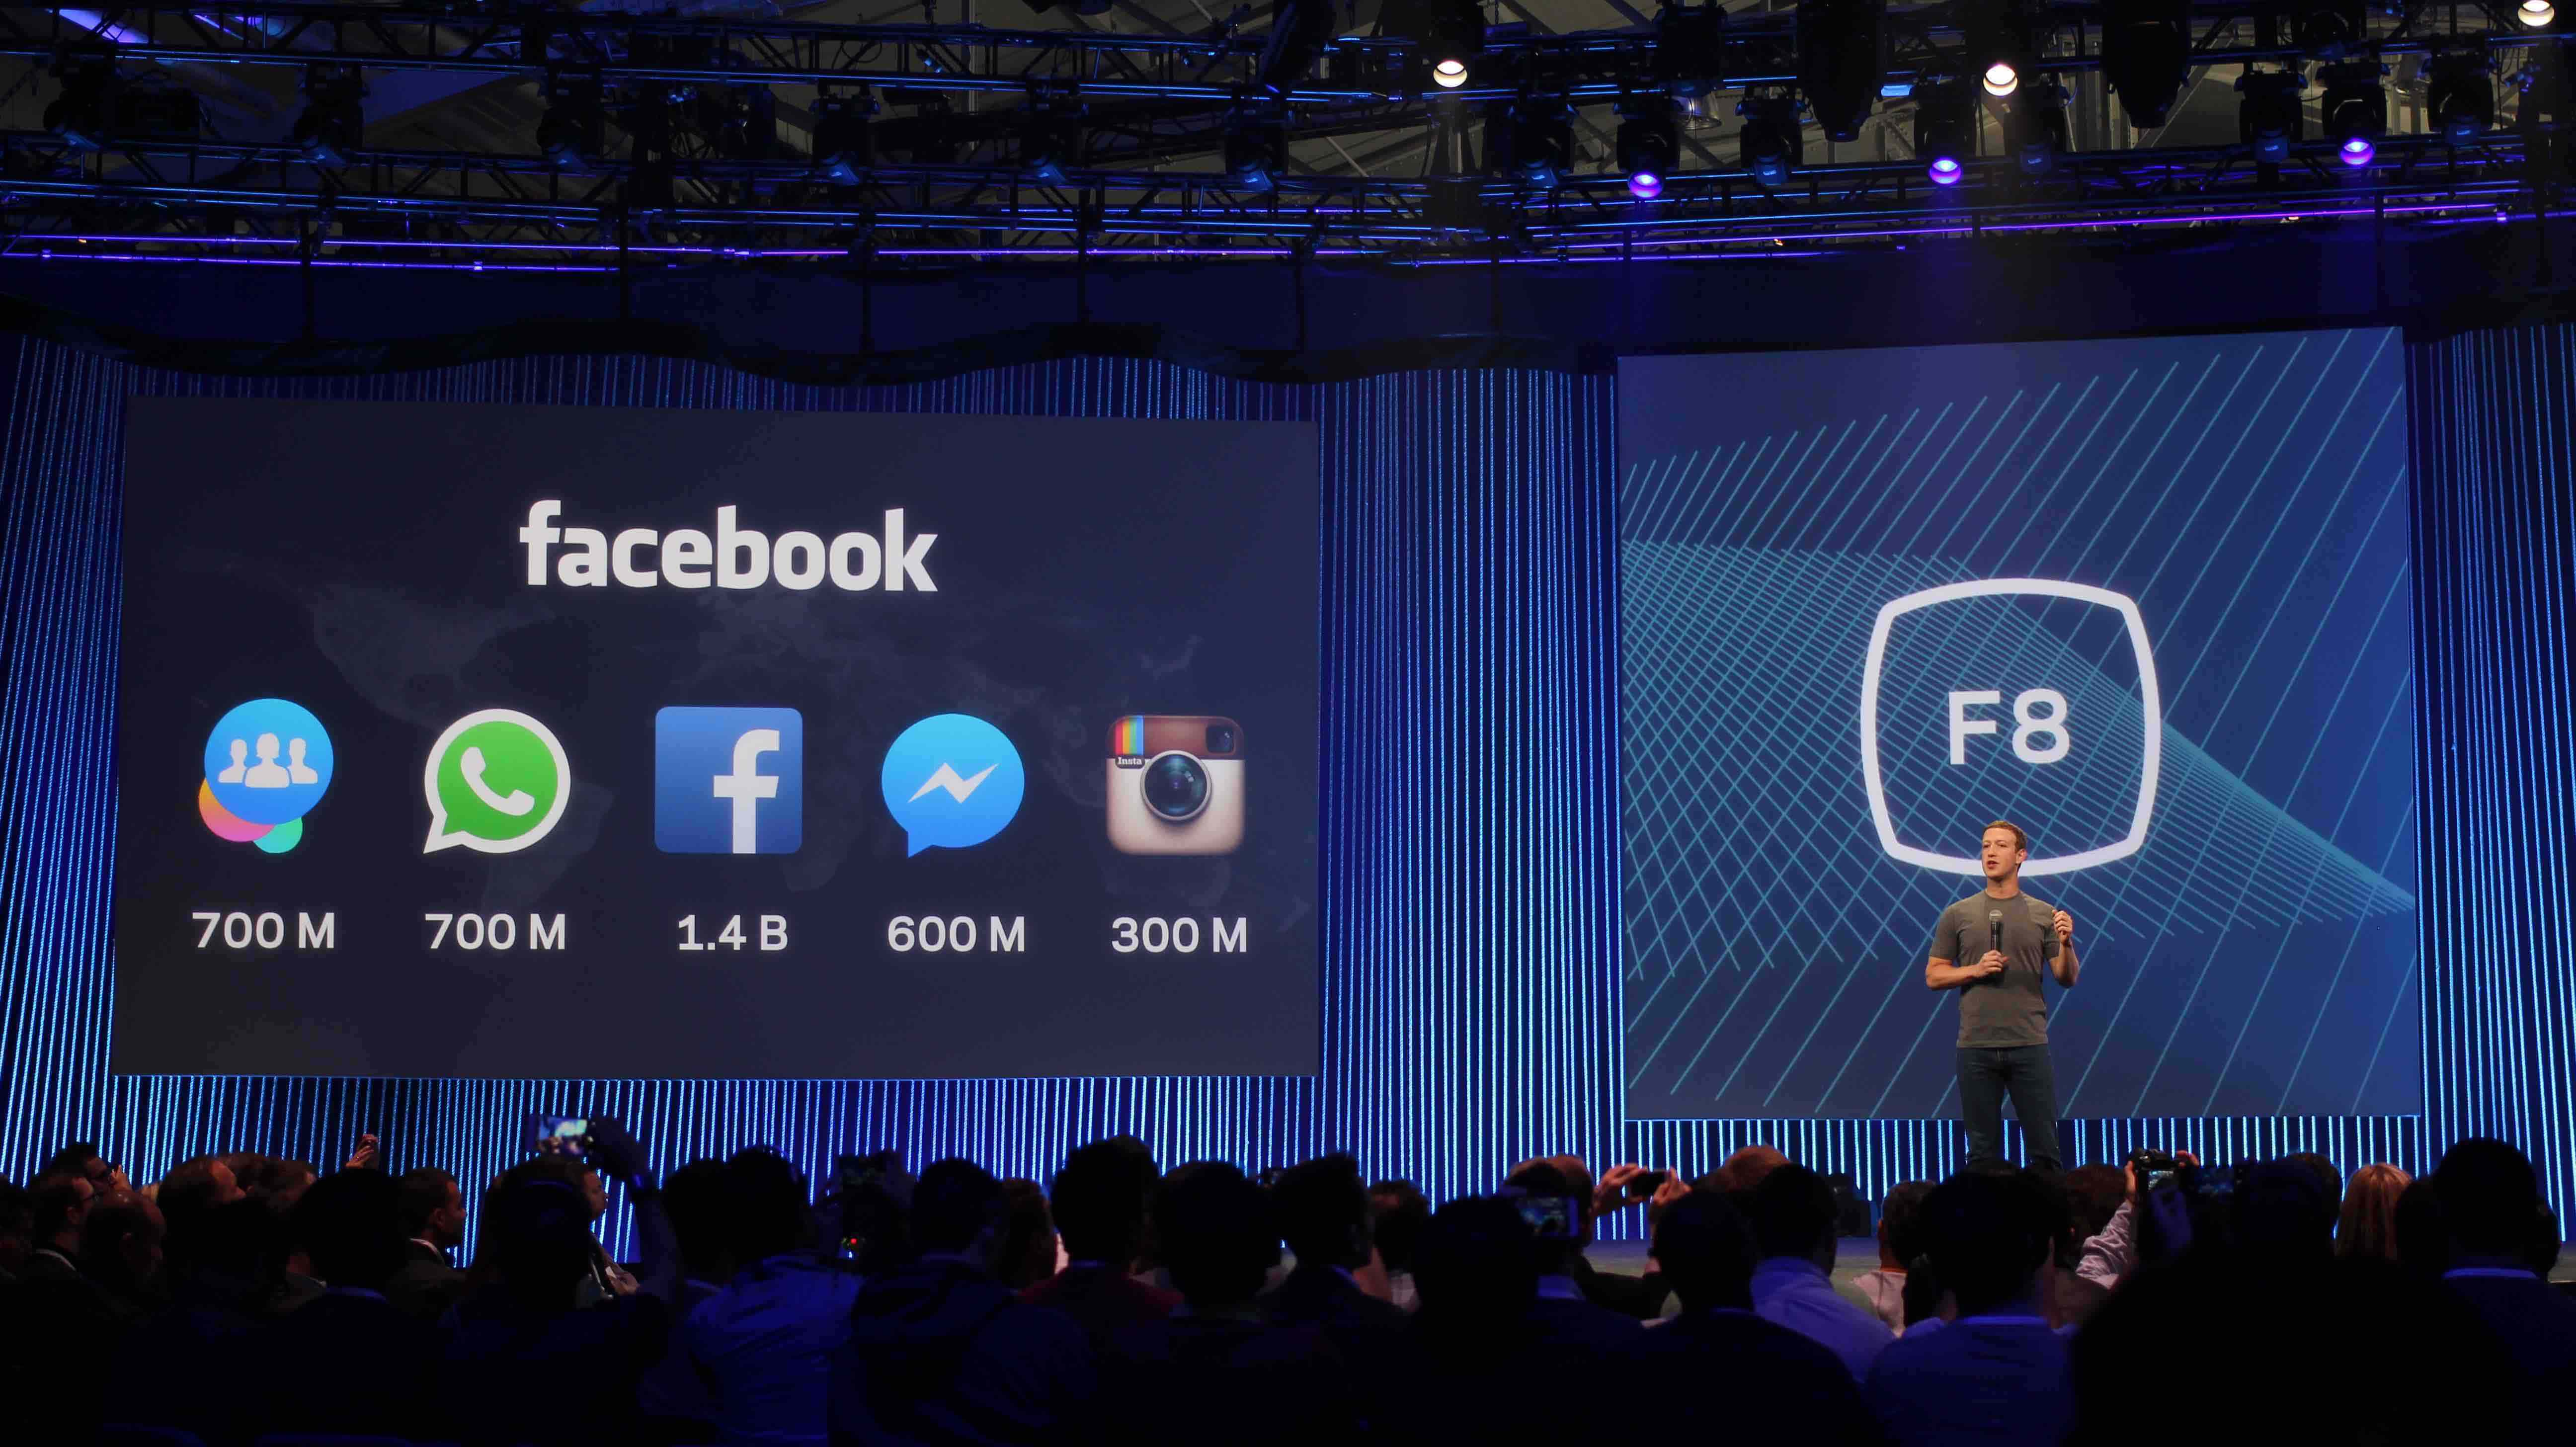 Maurizio Pesce from Milan, Italia. Creative Commons 2.0- Mark Zuckerberg on stage at Facebook's F8 Developers Conference 2015